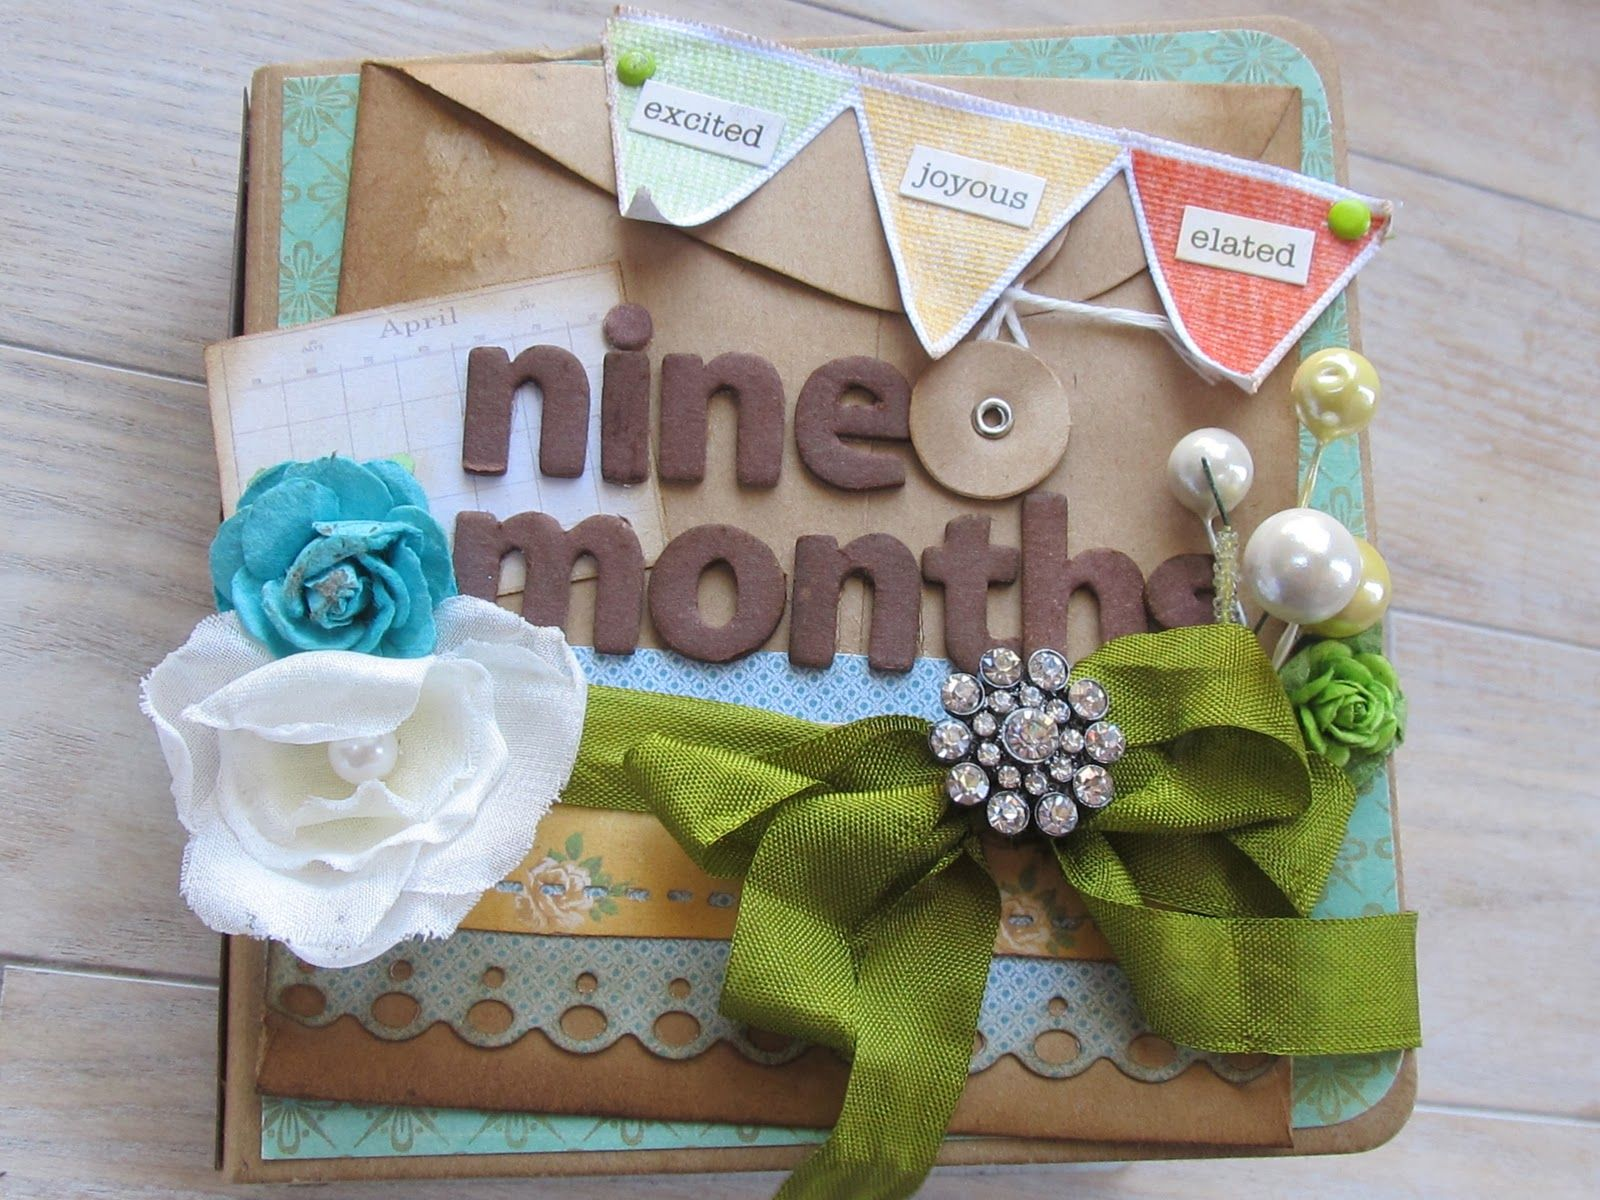 Pregnancy scrapbook ideas journaling - This Is Another Custom Album From A Few Weeks Ago A Pregnancy Journal With Pages